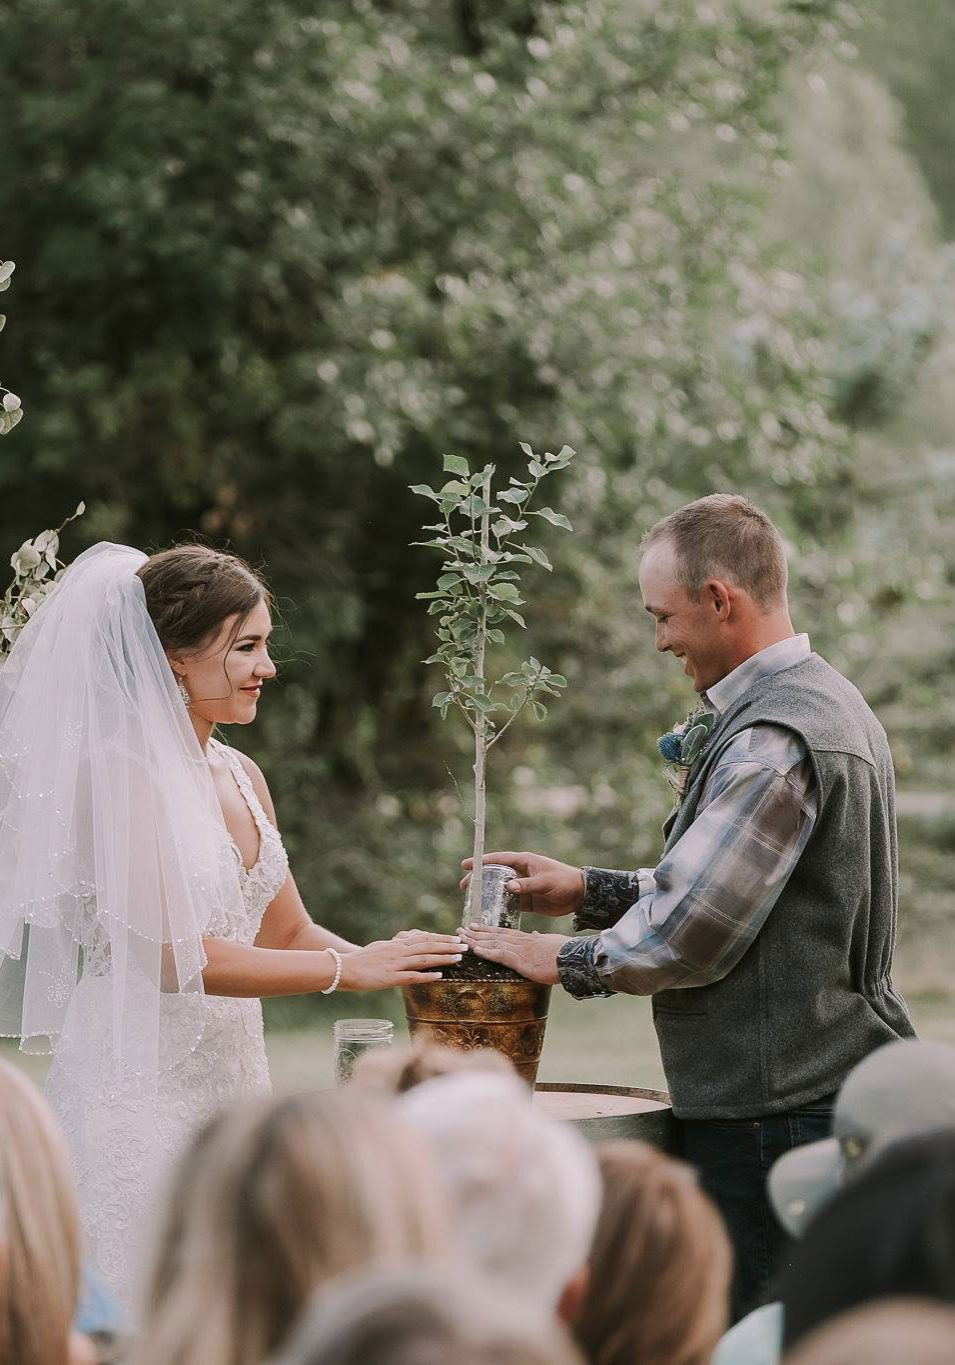 A casual outdoor wedding with a rustic vibe